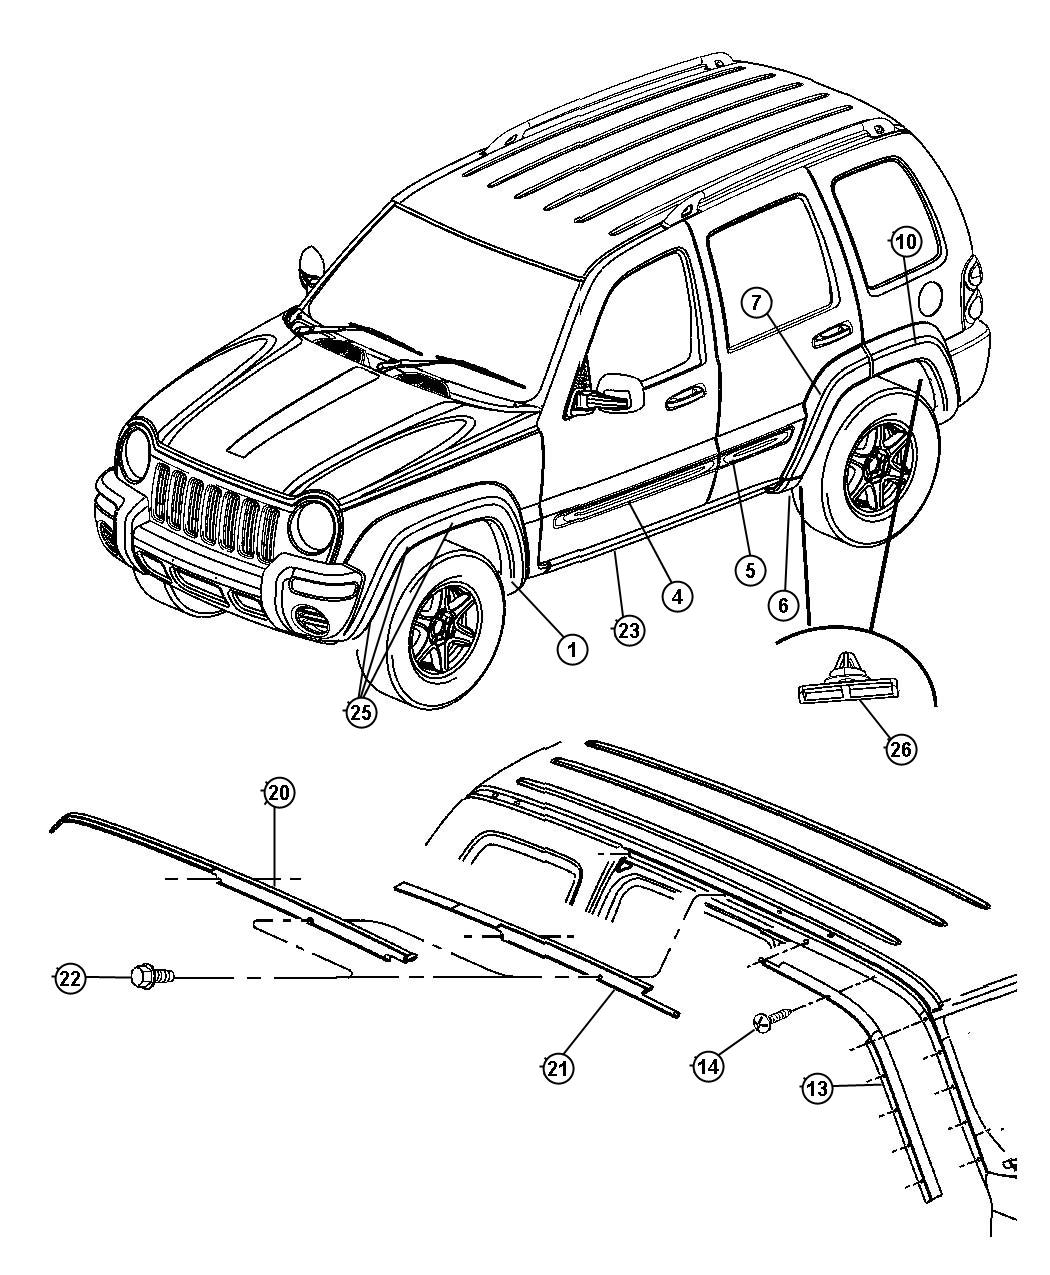 2002 2007 Jeep Liberty Kj Replacement Parts Quadratec